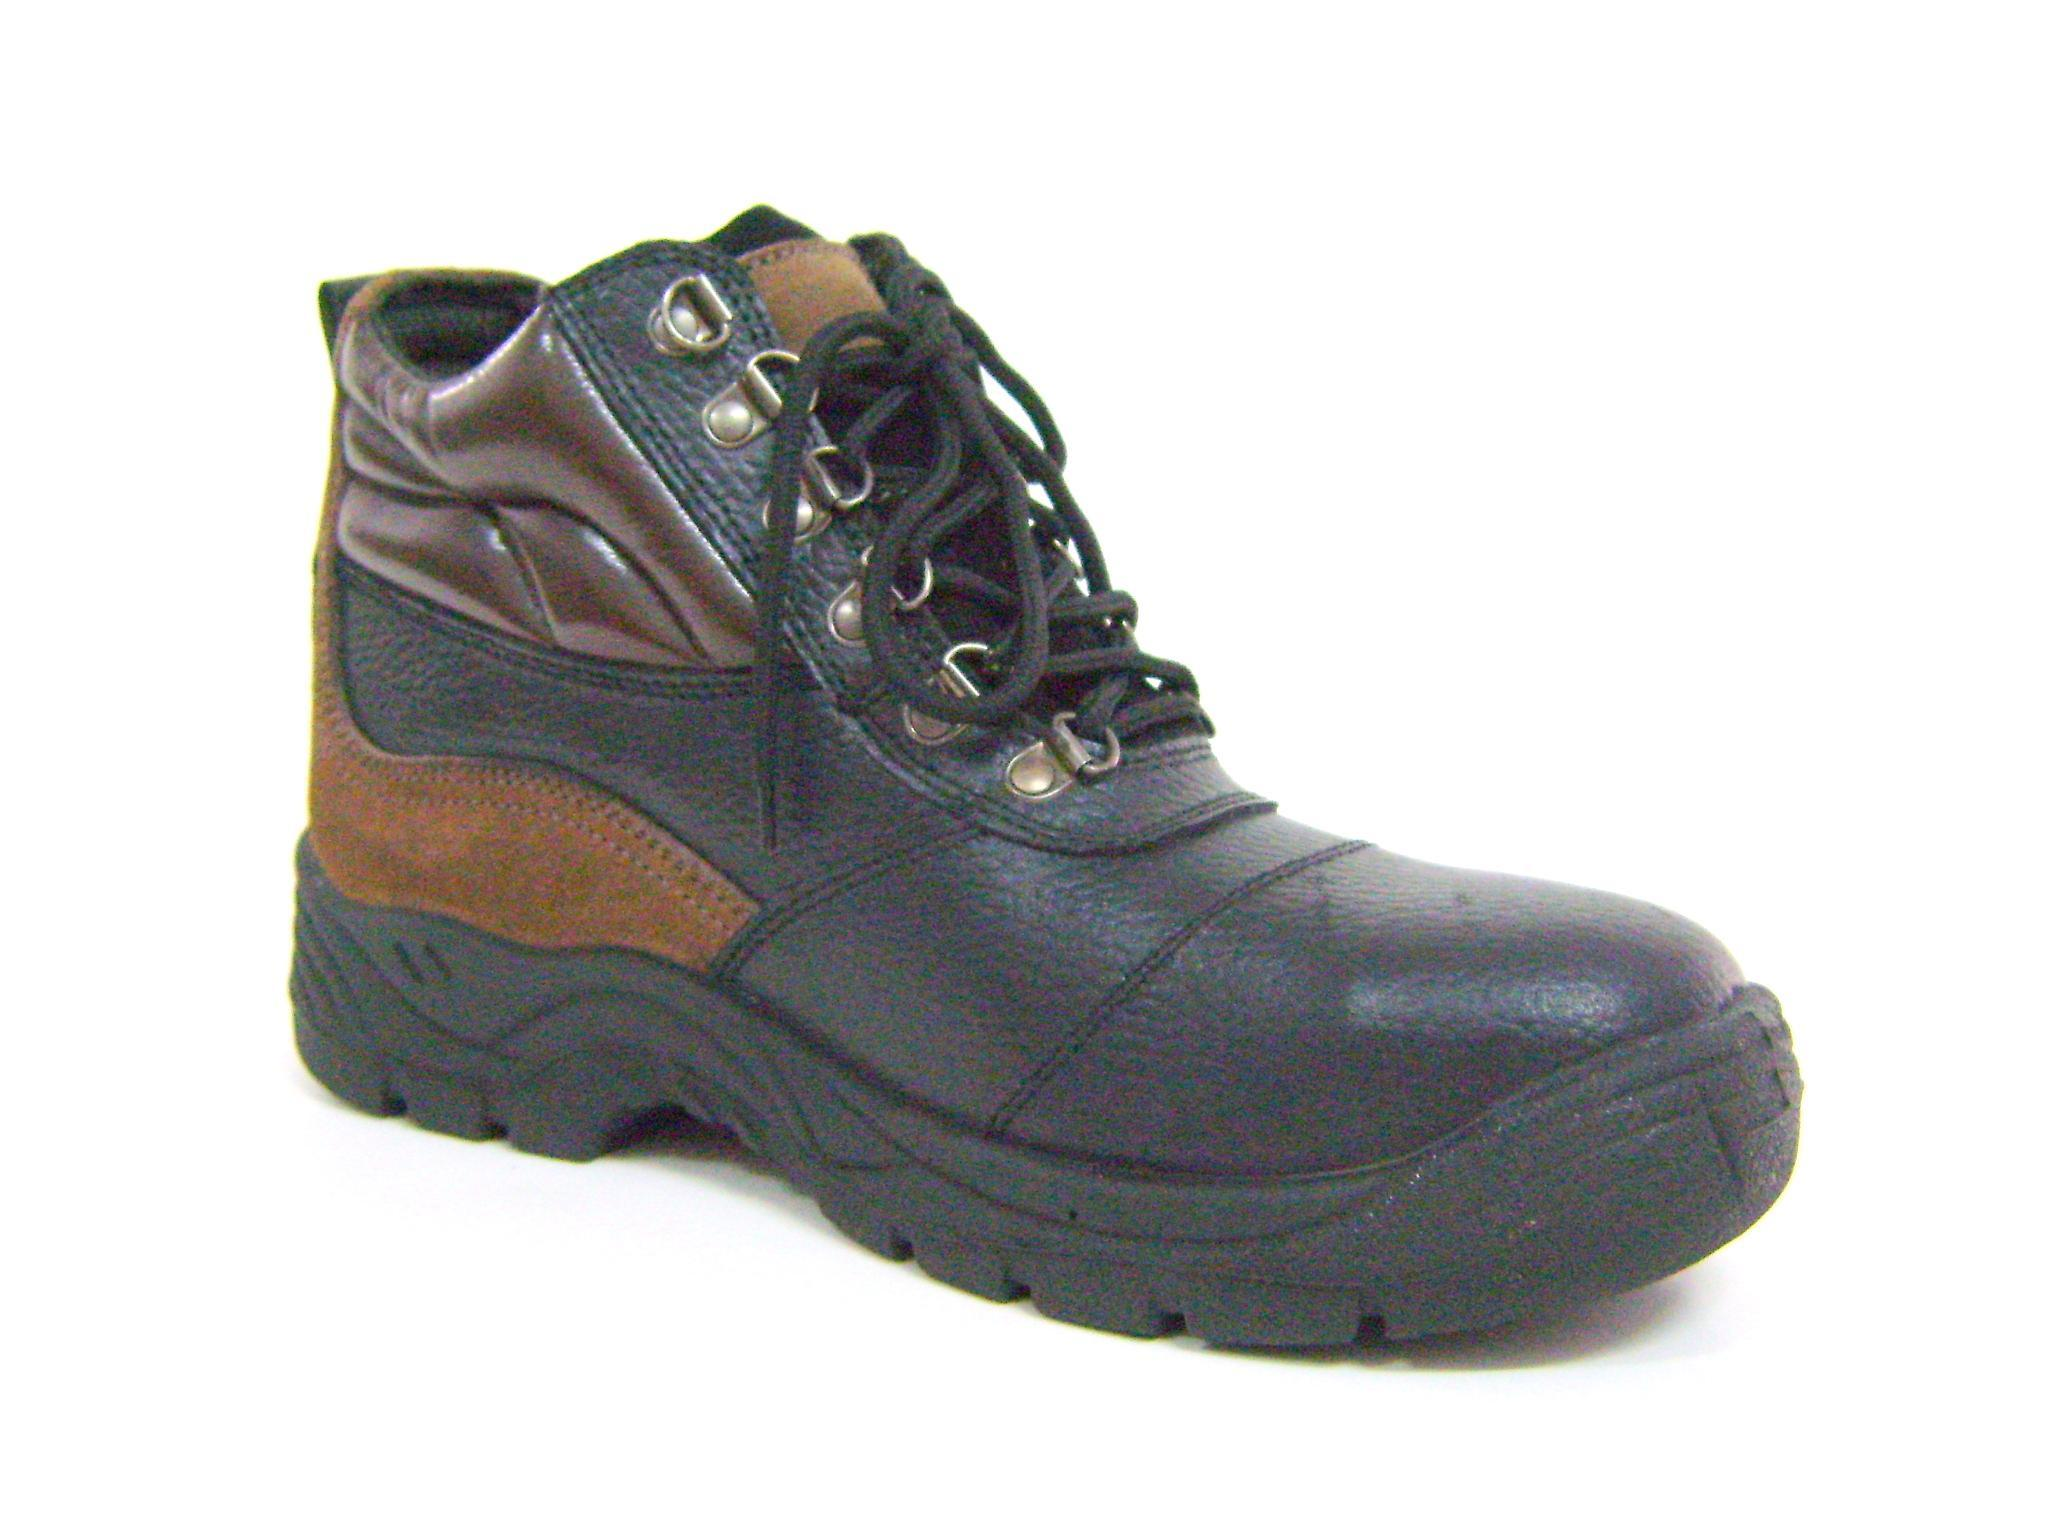 Casual Safety Shoes For Sale